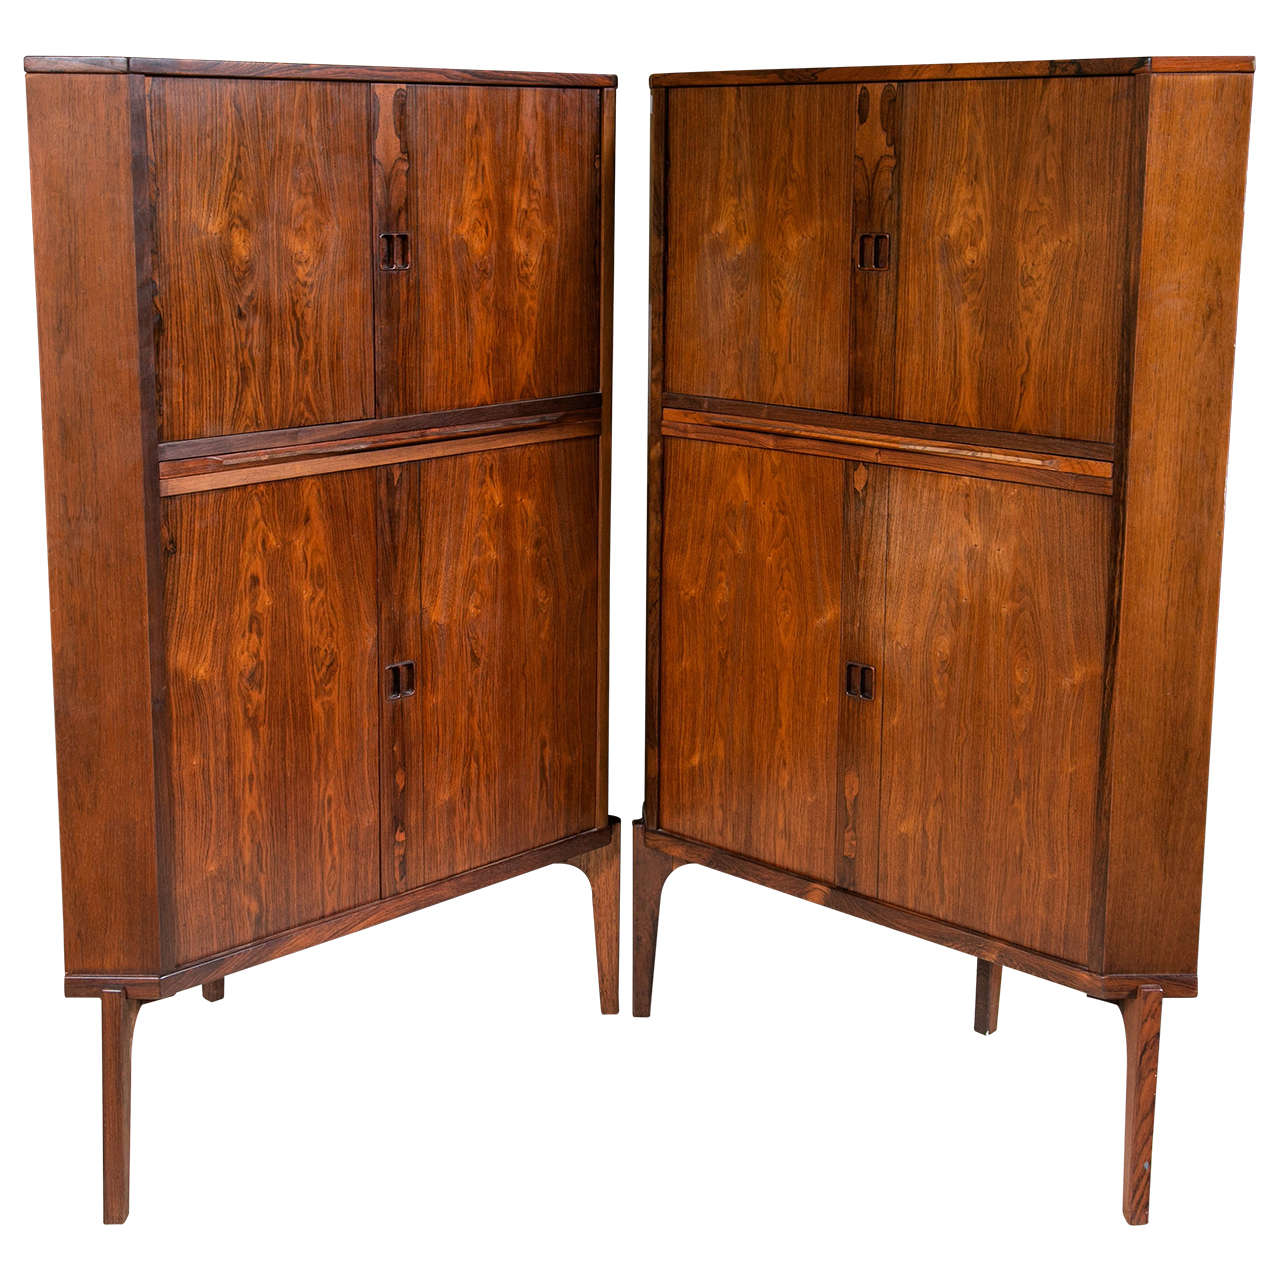 Pair Of Mid Century Modern Danish Rosewood Corner Cabinets Or Bars Raised  Legs